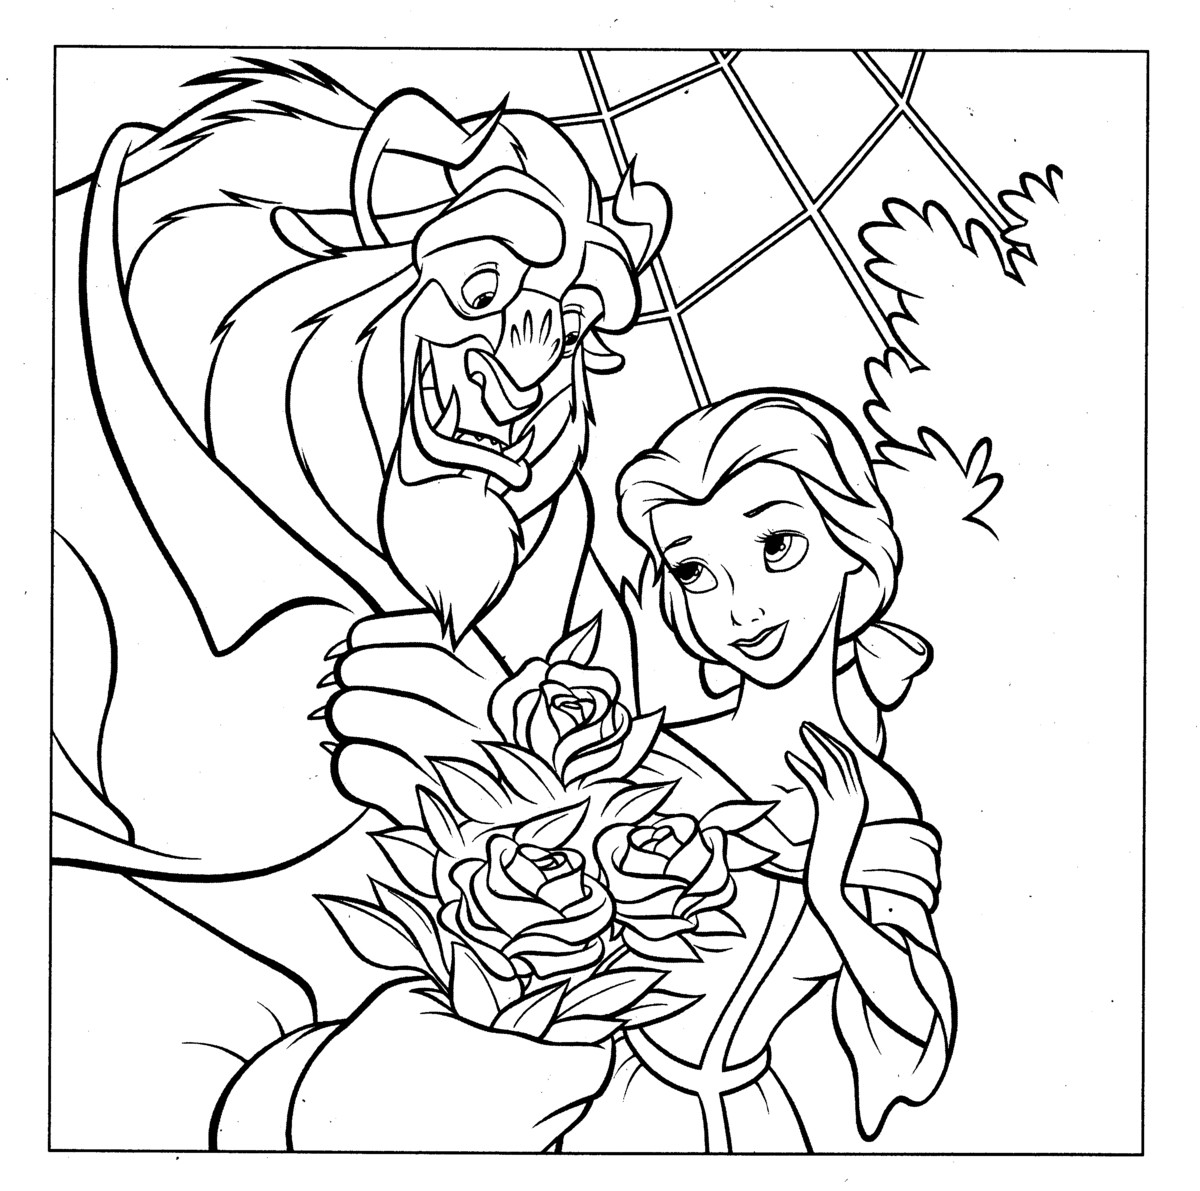 coloring pages beauty and the beast beauty and the beast coloring pages disney coloring book and coloring pages the beast beauty